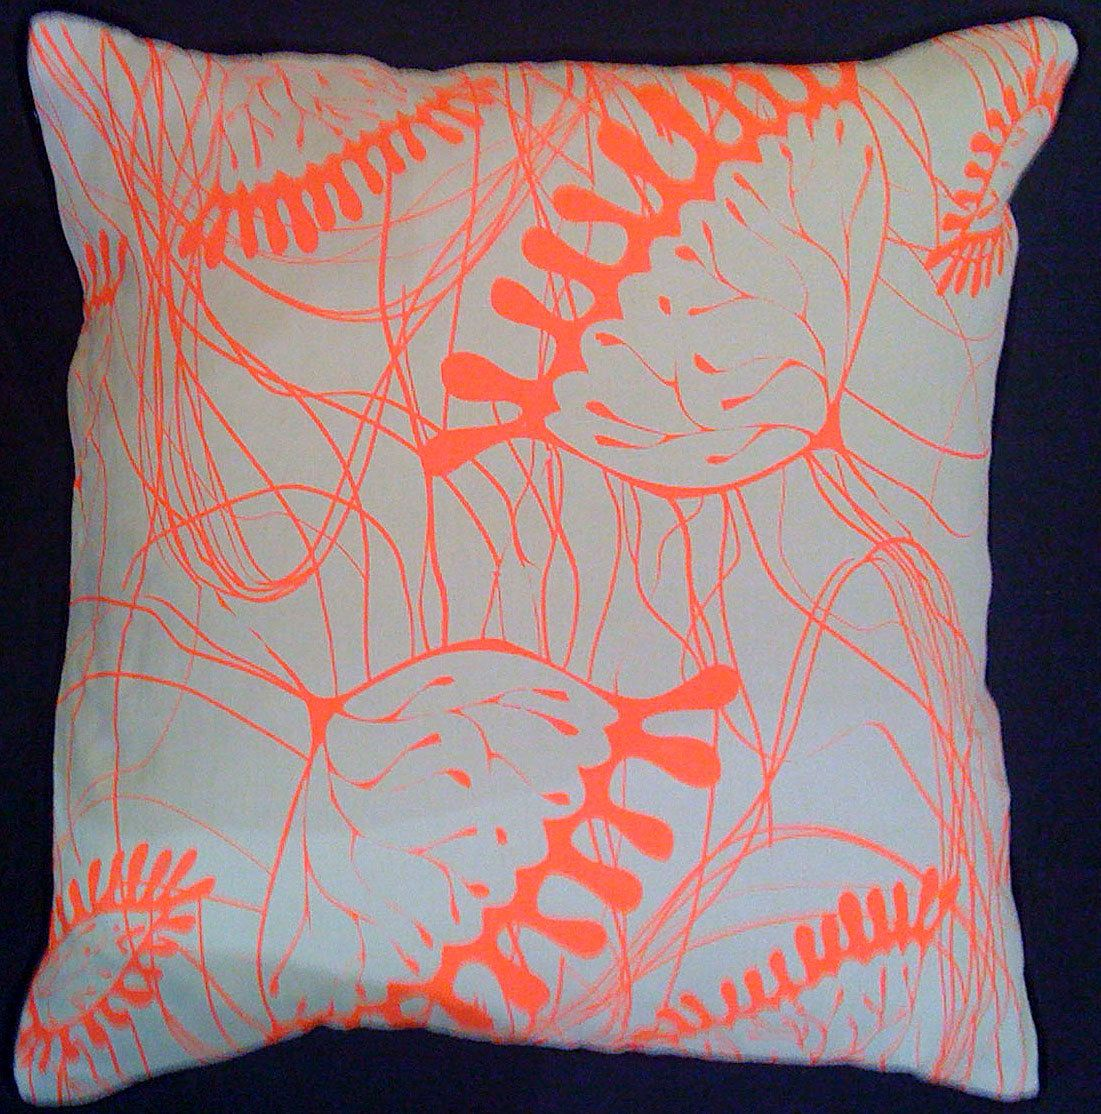 Hand screen printed linen cushion with neon pattern print design and